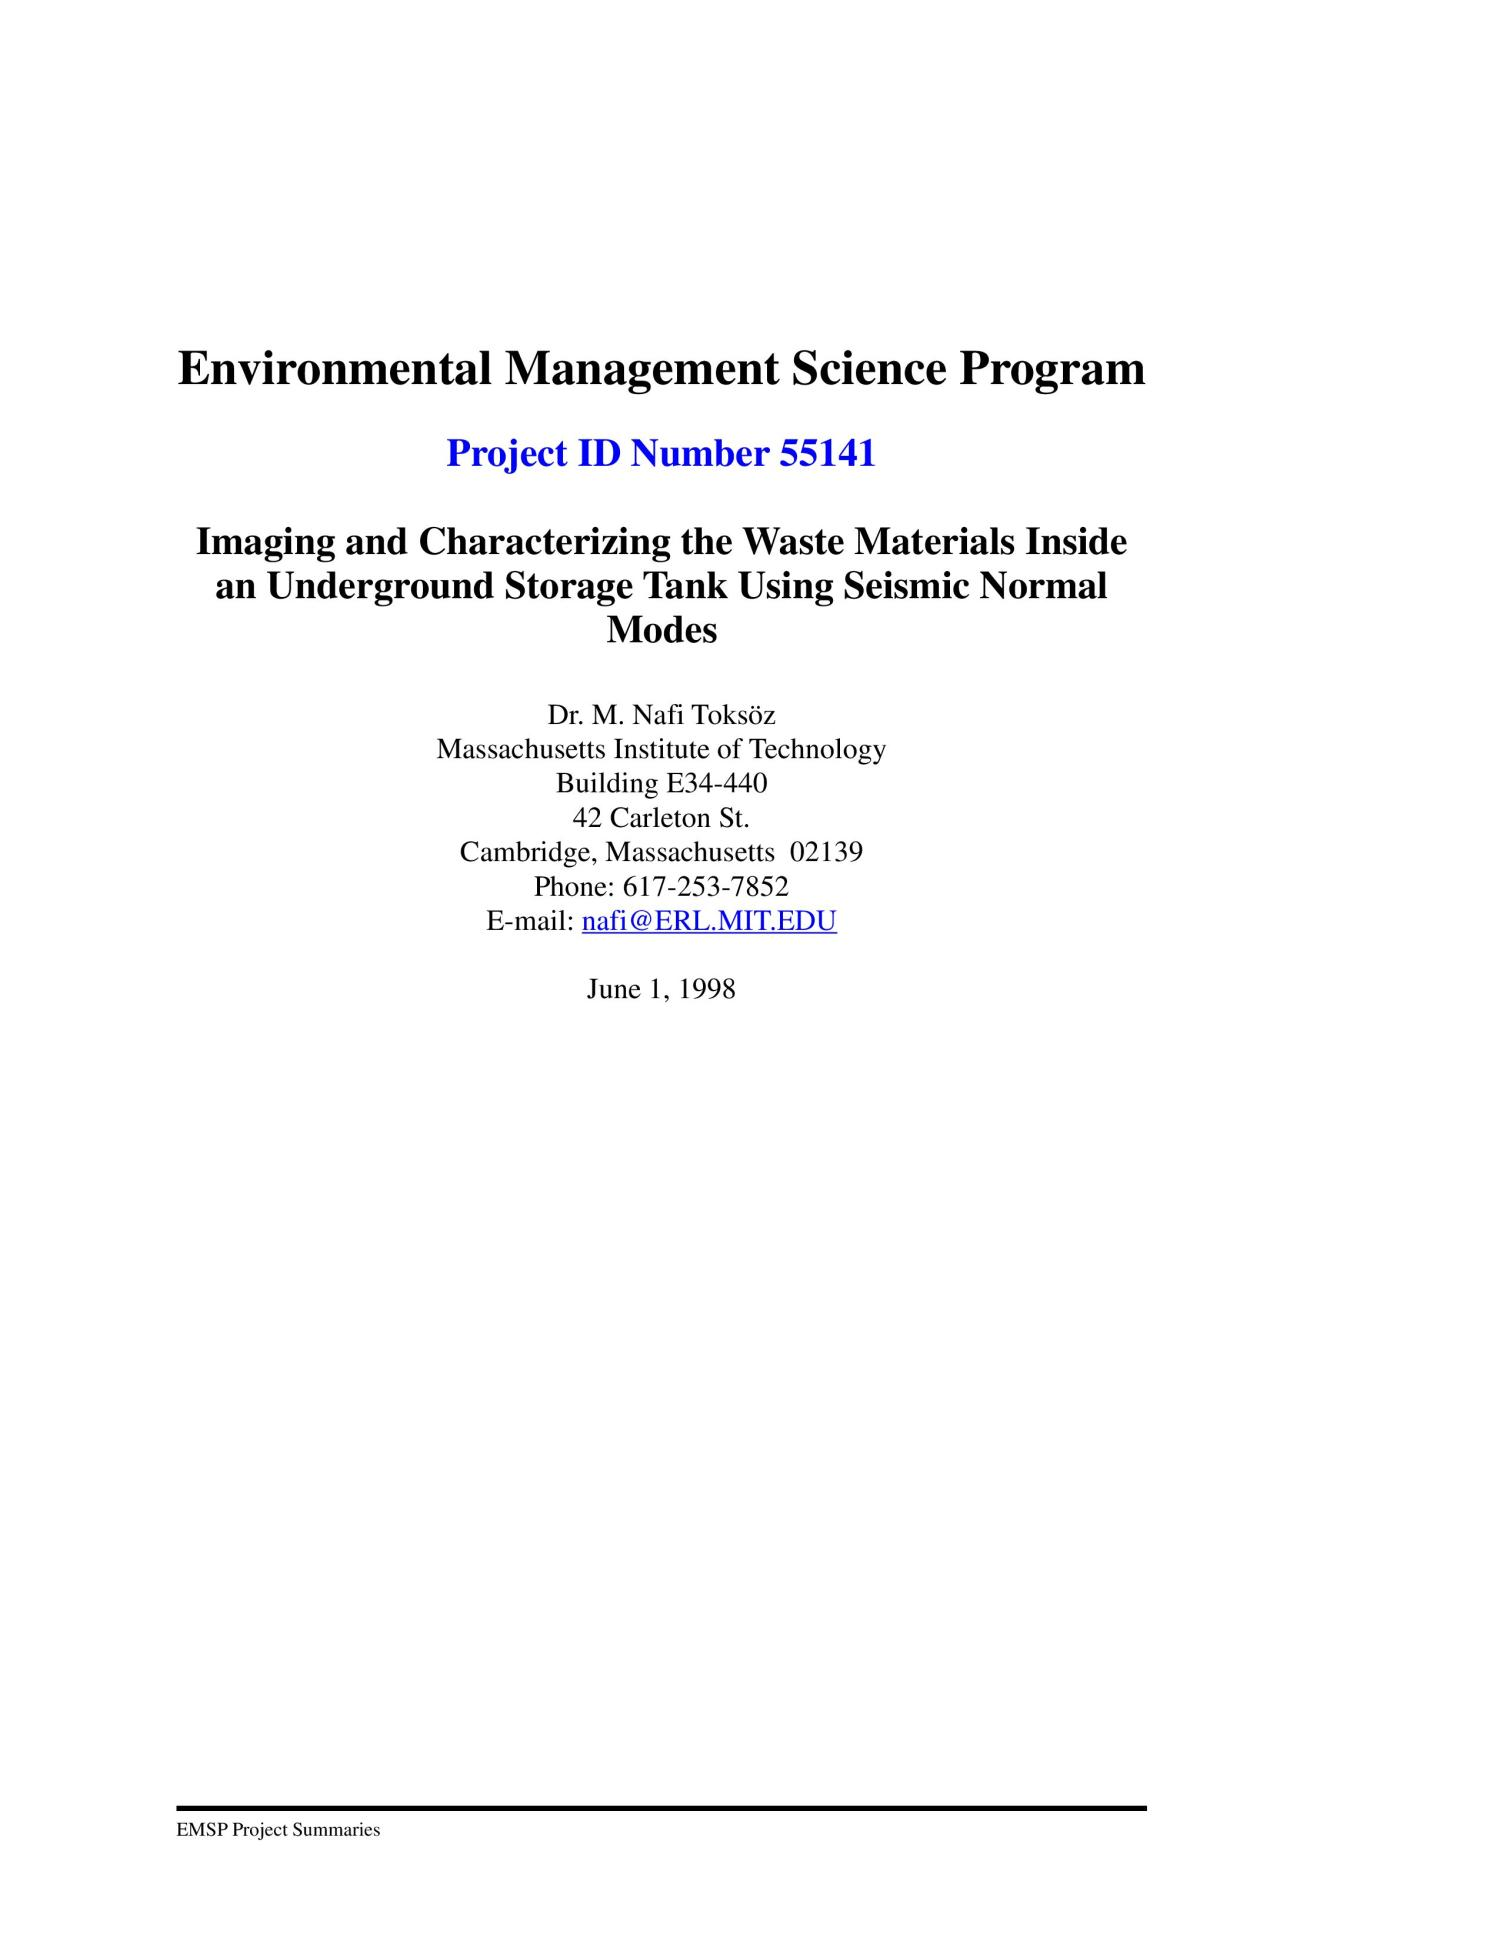 Imaging and characterizing the waste materials inside an underground storage tank using seismic normal modes. 1998 annual progress report                                                                                                      [Sequence #]: 1 of 3